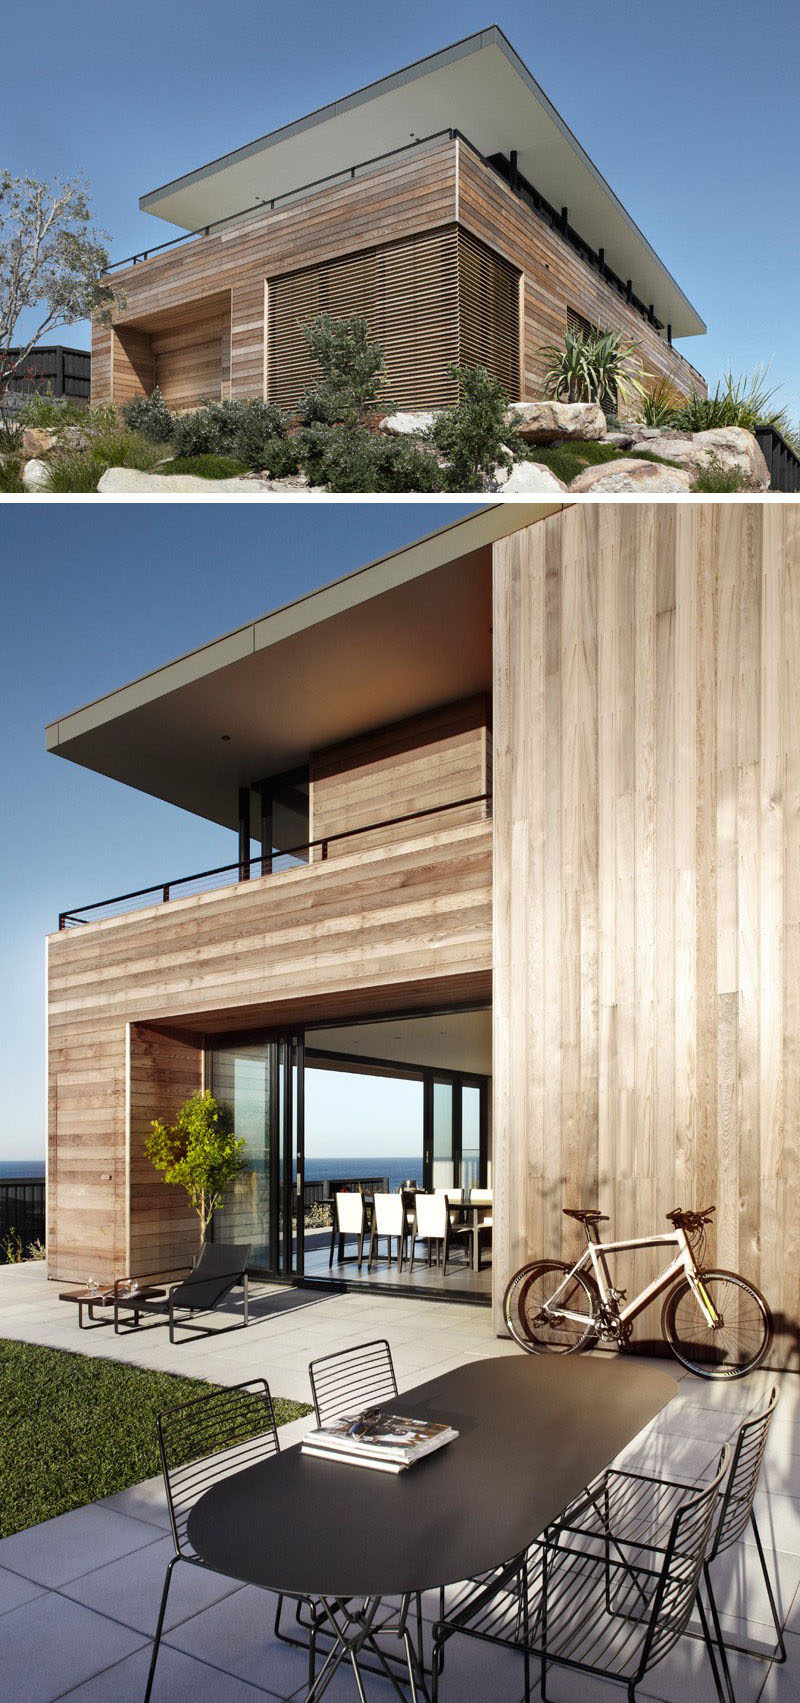 Great 14 Examples Of Modern Beach Houses // Light Wood Paneling Covers The  Exterior Of The Great Ideas